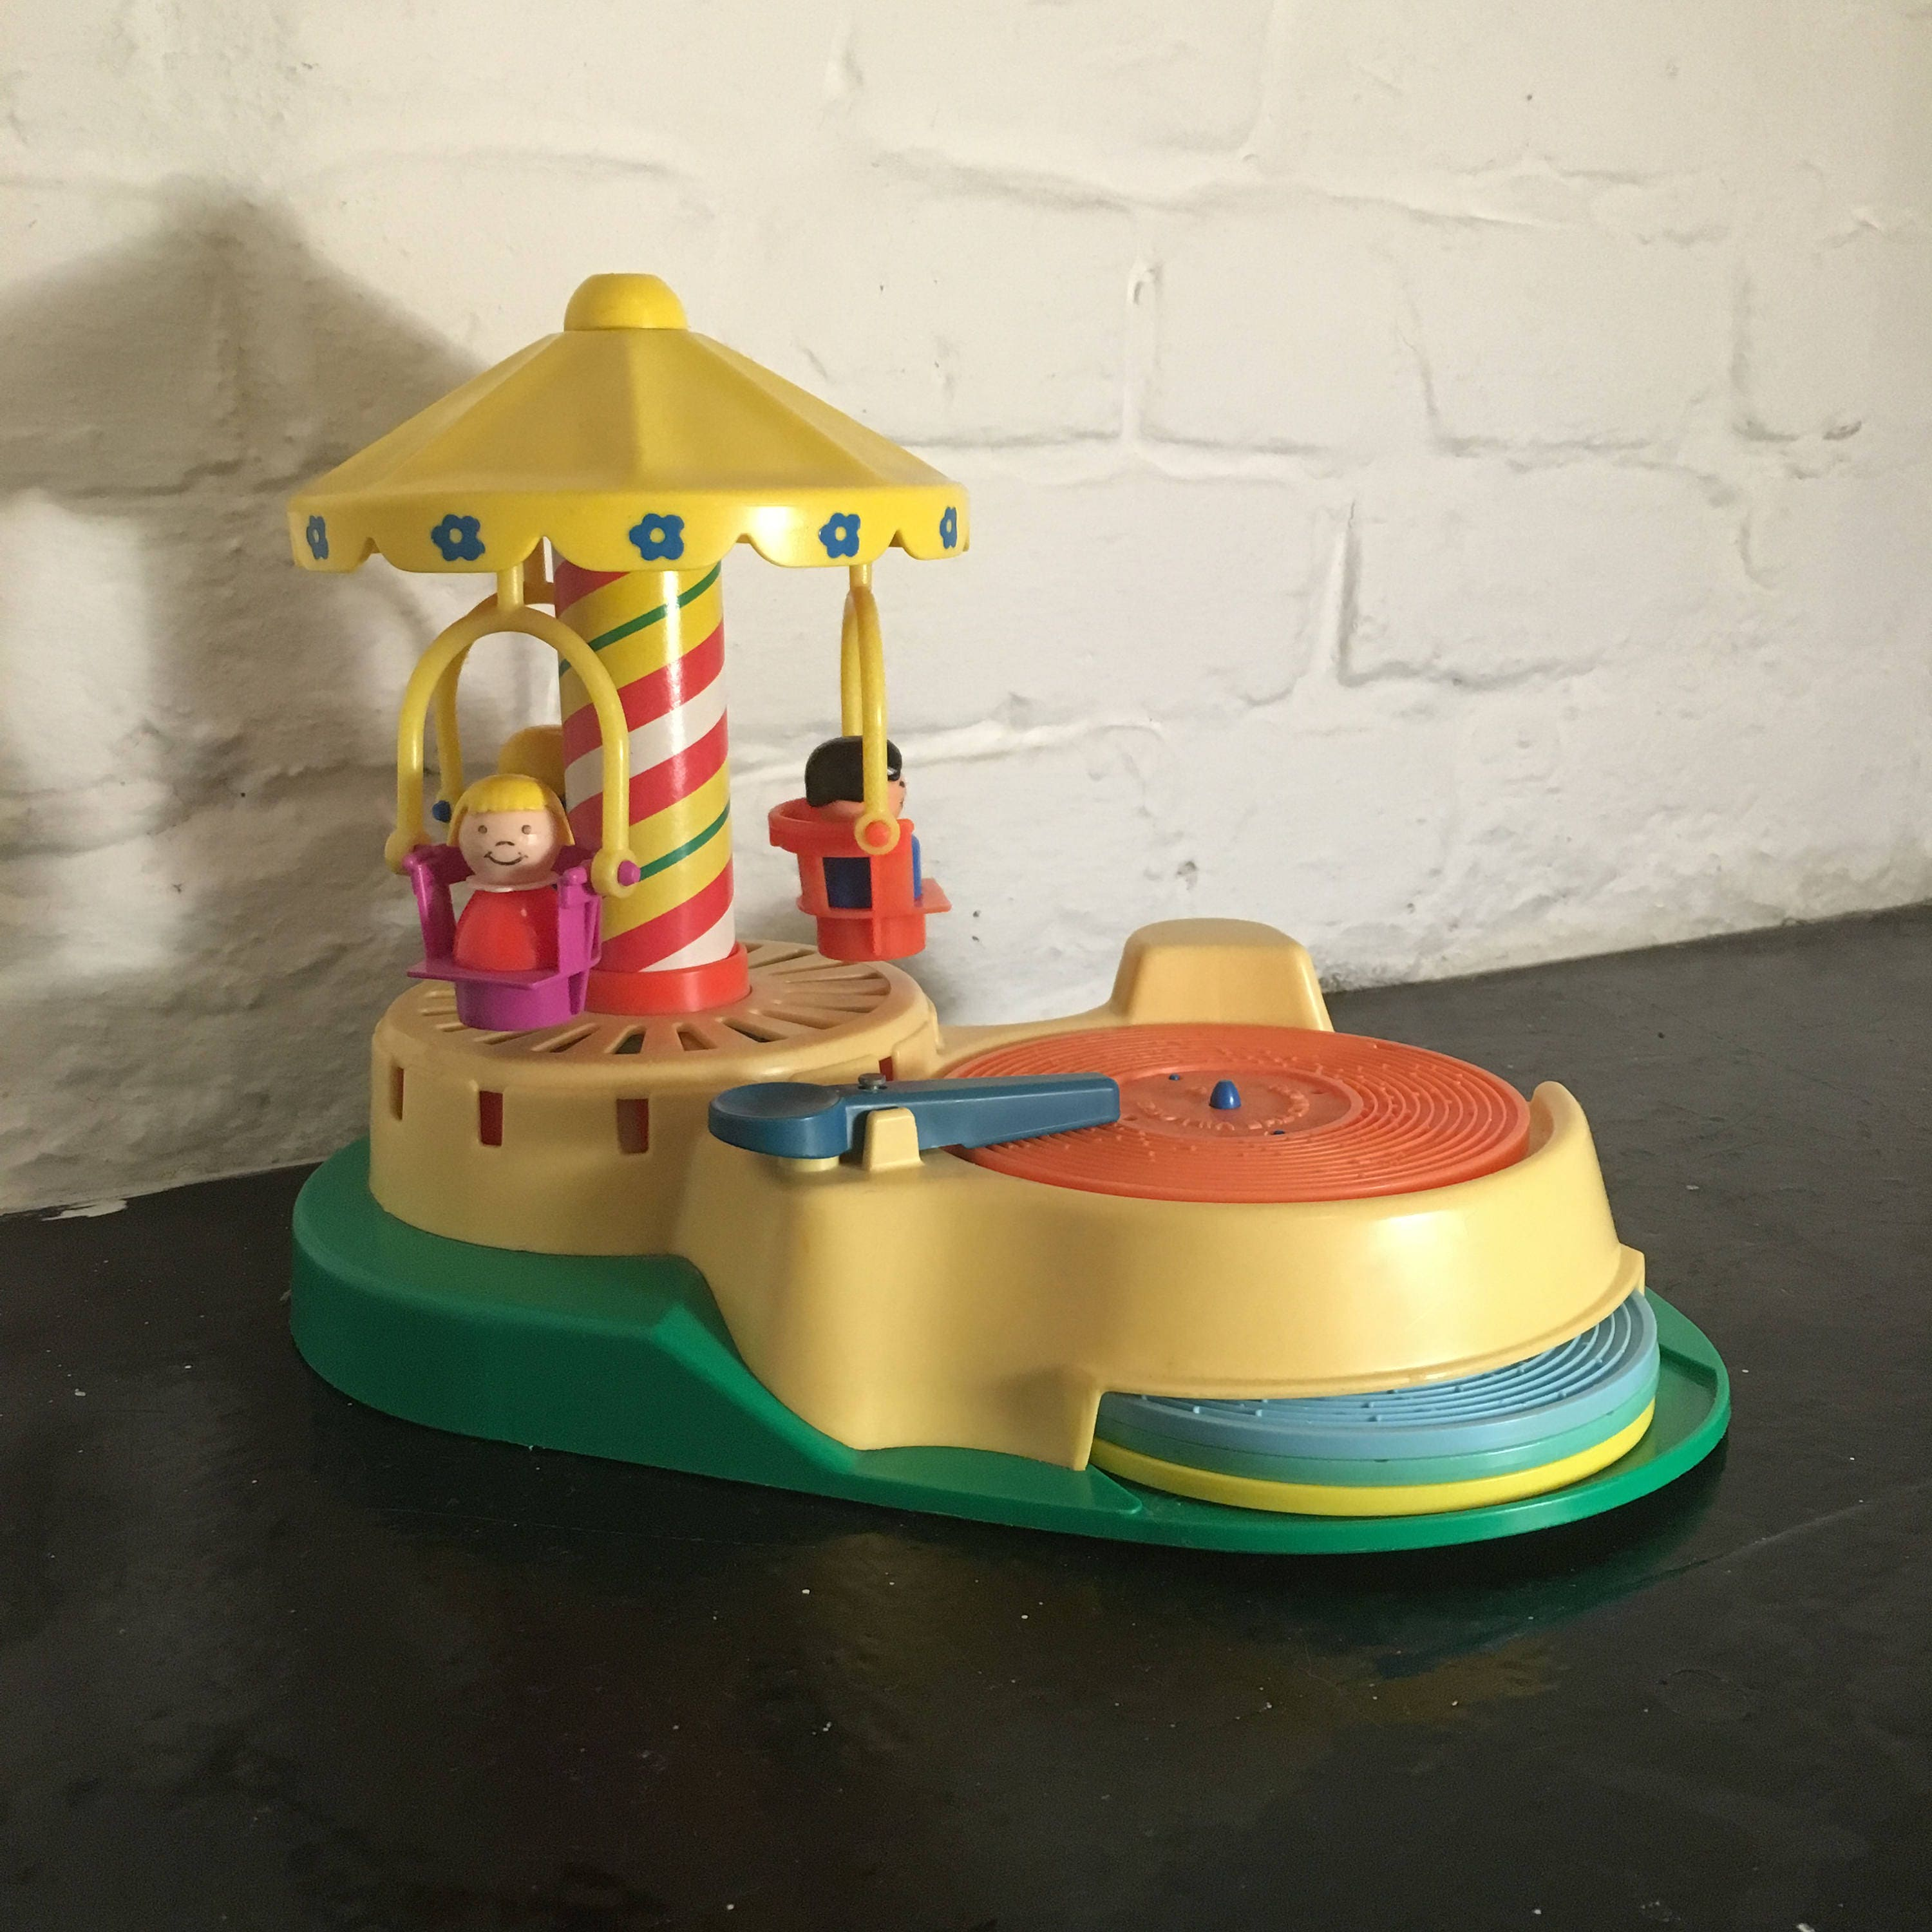 Vintage 1980s Fisher Price ChangeATune Record Player and Carousel, Model no. 170